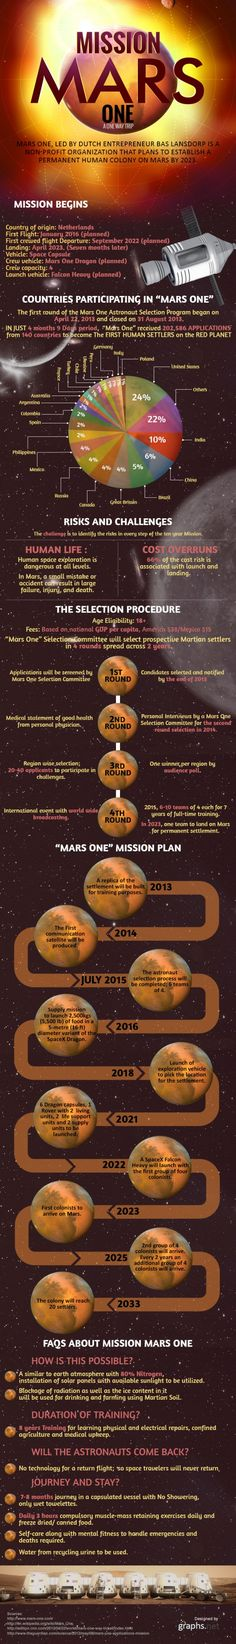 Mars Mission Mars One Mission Infographic. Mars One is a not-for-profit organization based in the Netherlands that has put forward conceptual plans to establish a permanent human colony on Mars by Mars Mission, Mars One, Nasa, Cosmos, Red Planet, Mars Planet, Space And Astronomy, Astronomy Facts, Space Program